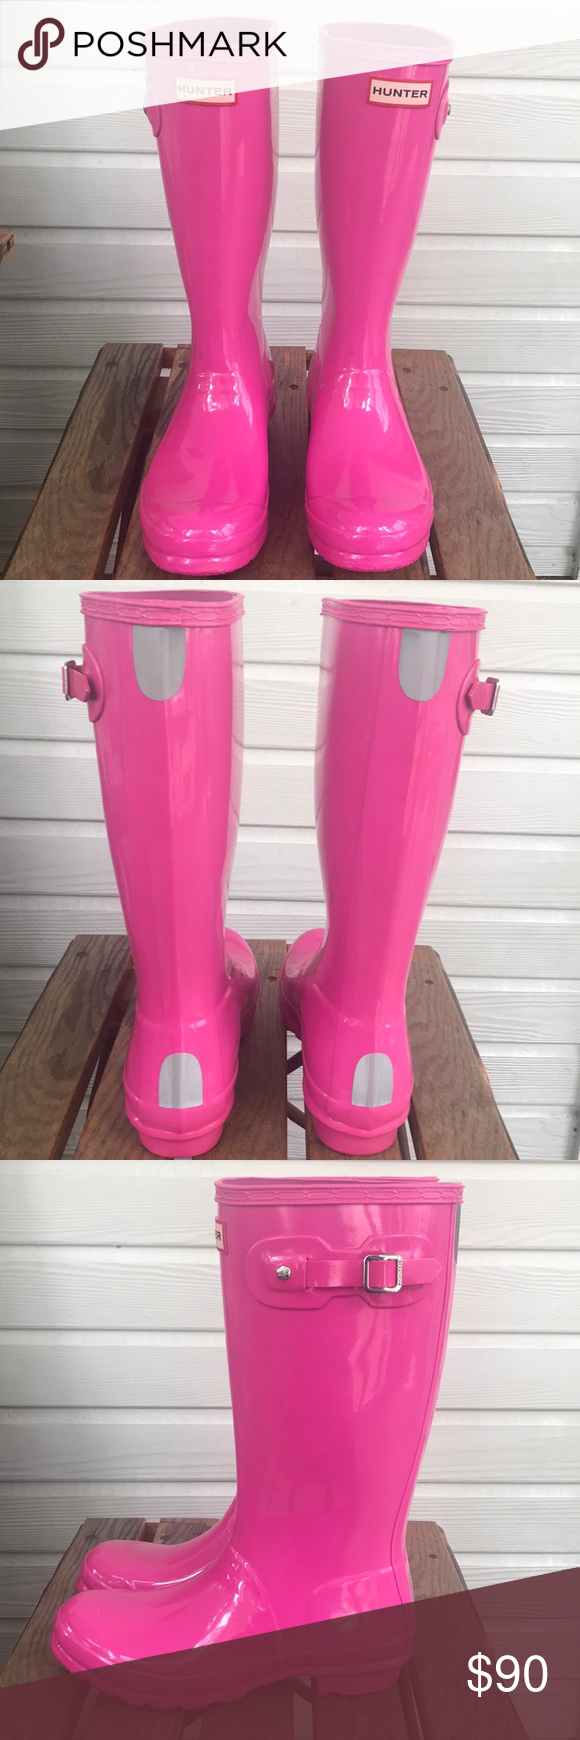 hunter kids glossy hot pink rain boots 6 b 7 g pink rain boots hunter kids hot pink pinterest